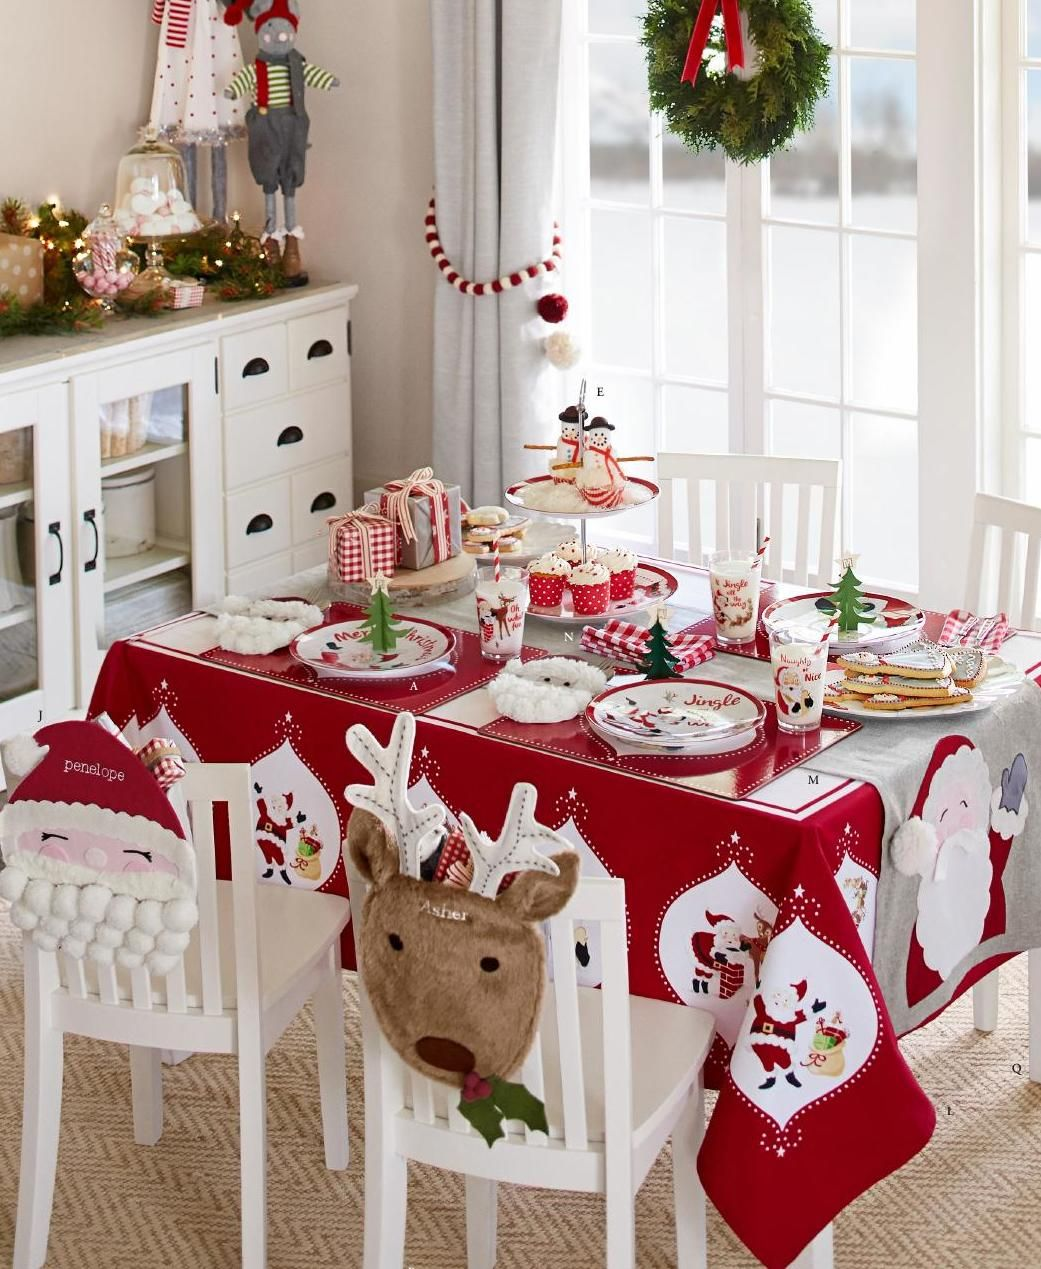 Kitchen Table Decor Ideas: Christmas Decorations For